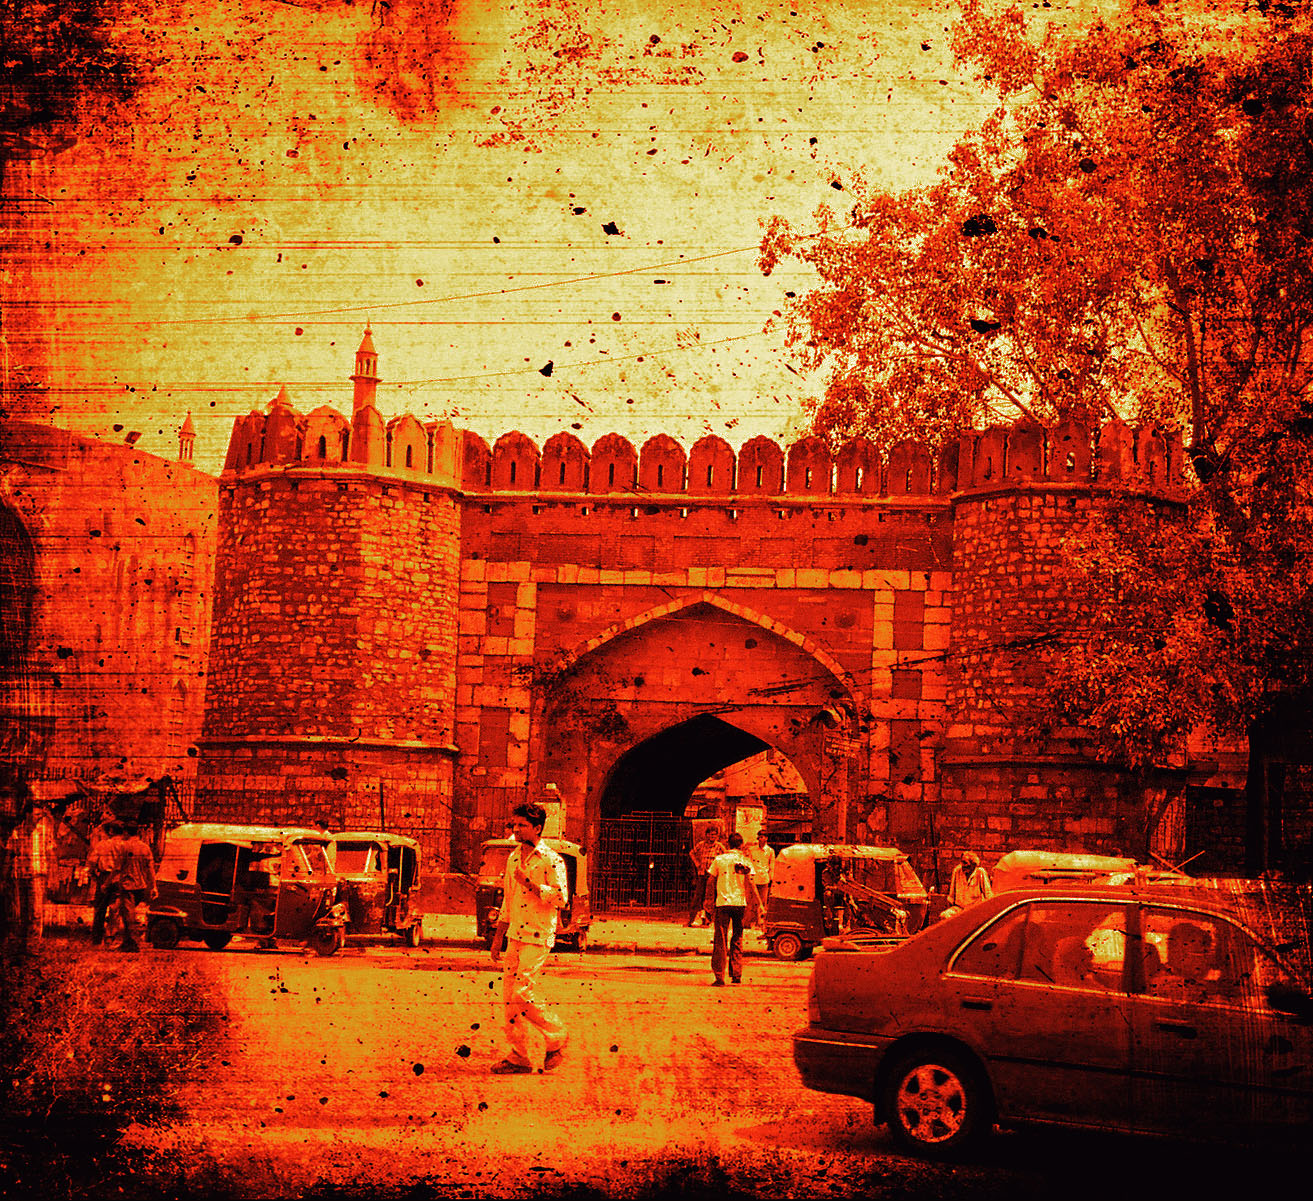 The Khooni Kissa of Turkman Gate